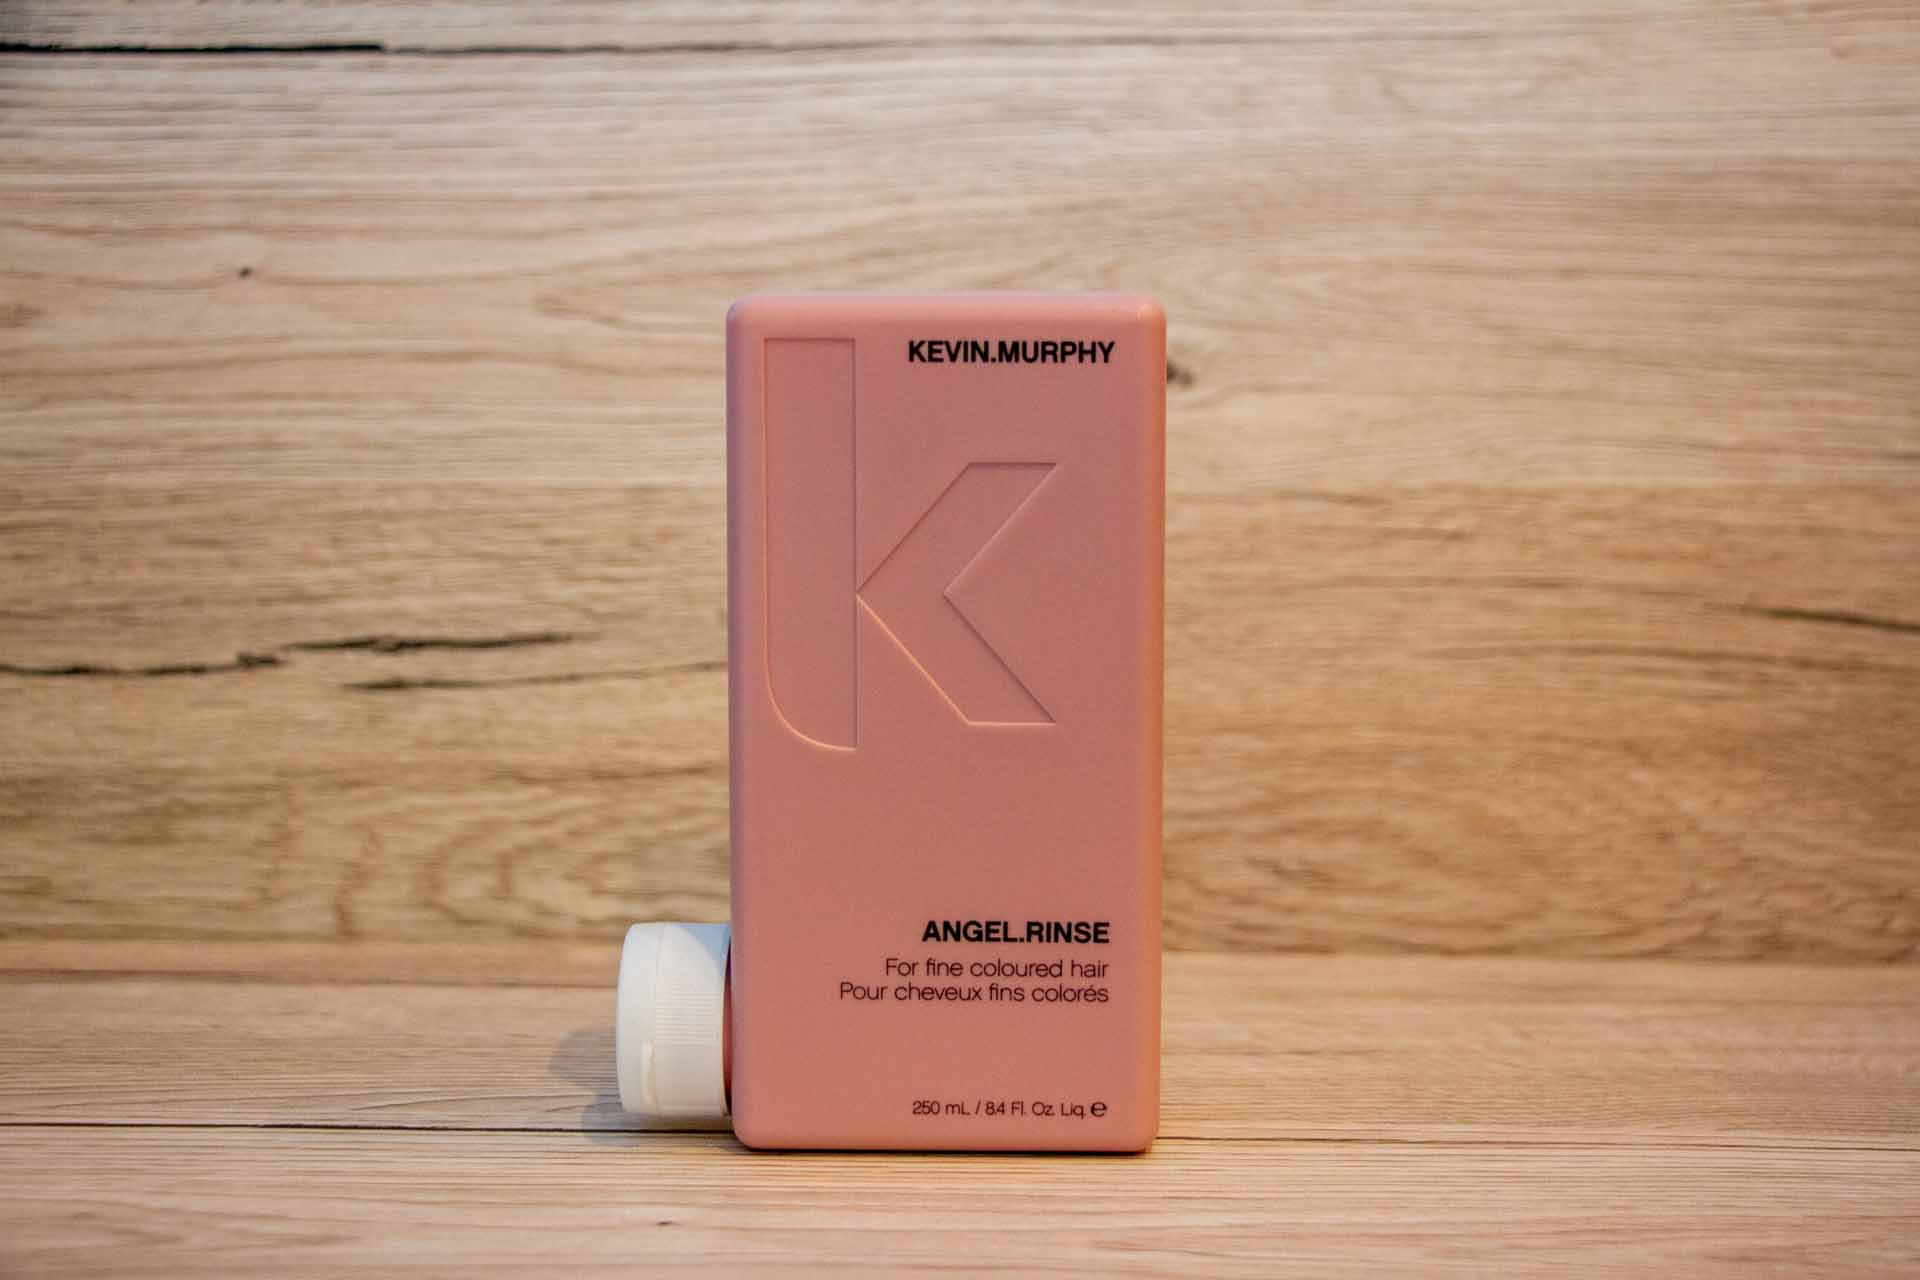 prodotti kevin murphy angel.rinse diego staff parrucchieri spinea